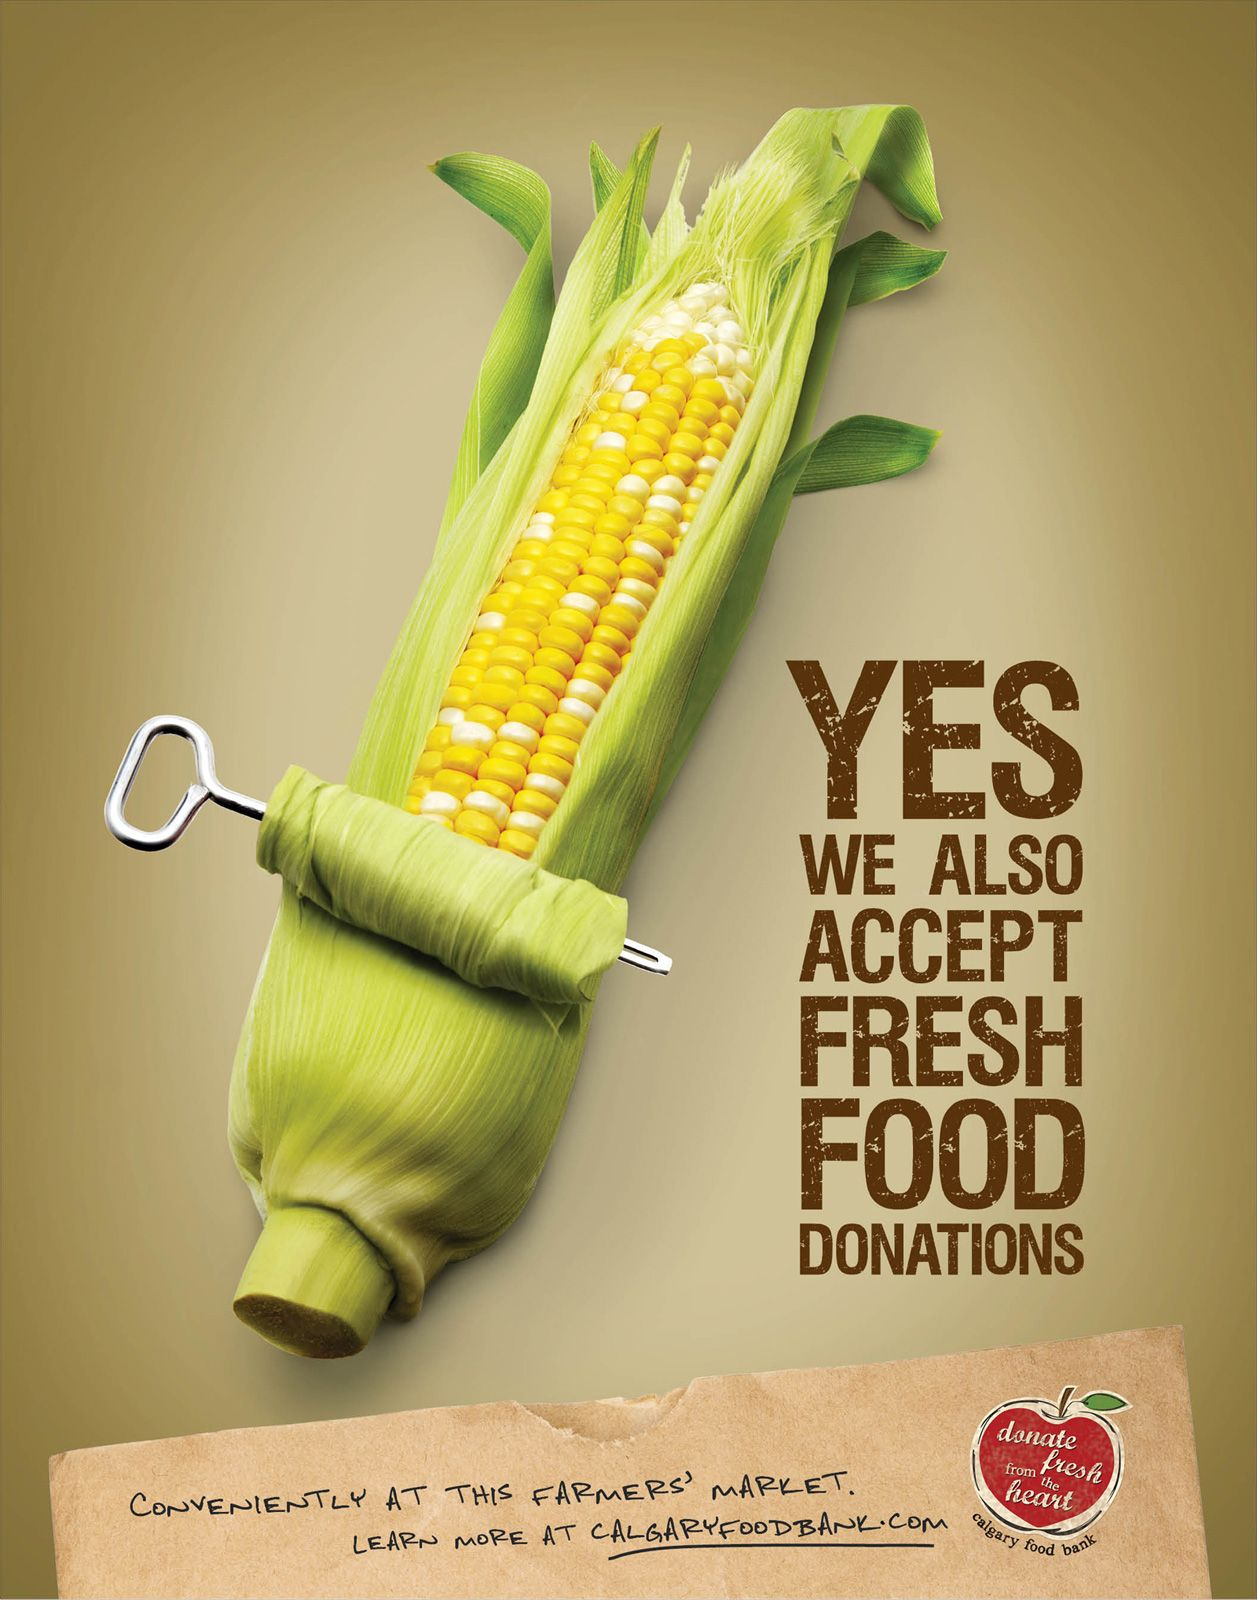 Creative food advertising foodbank posters 22x28 for Creation cuisine